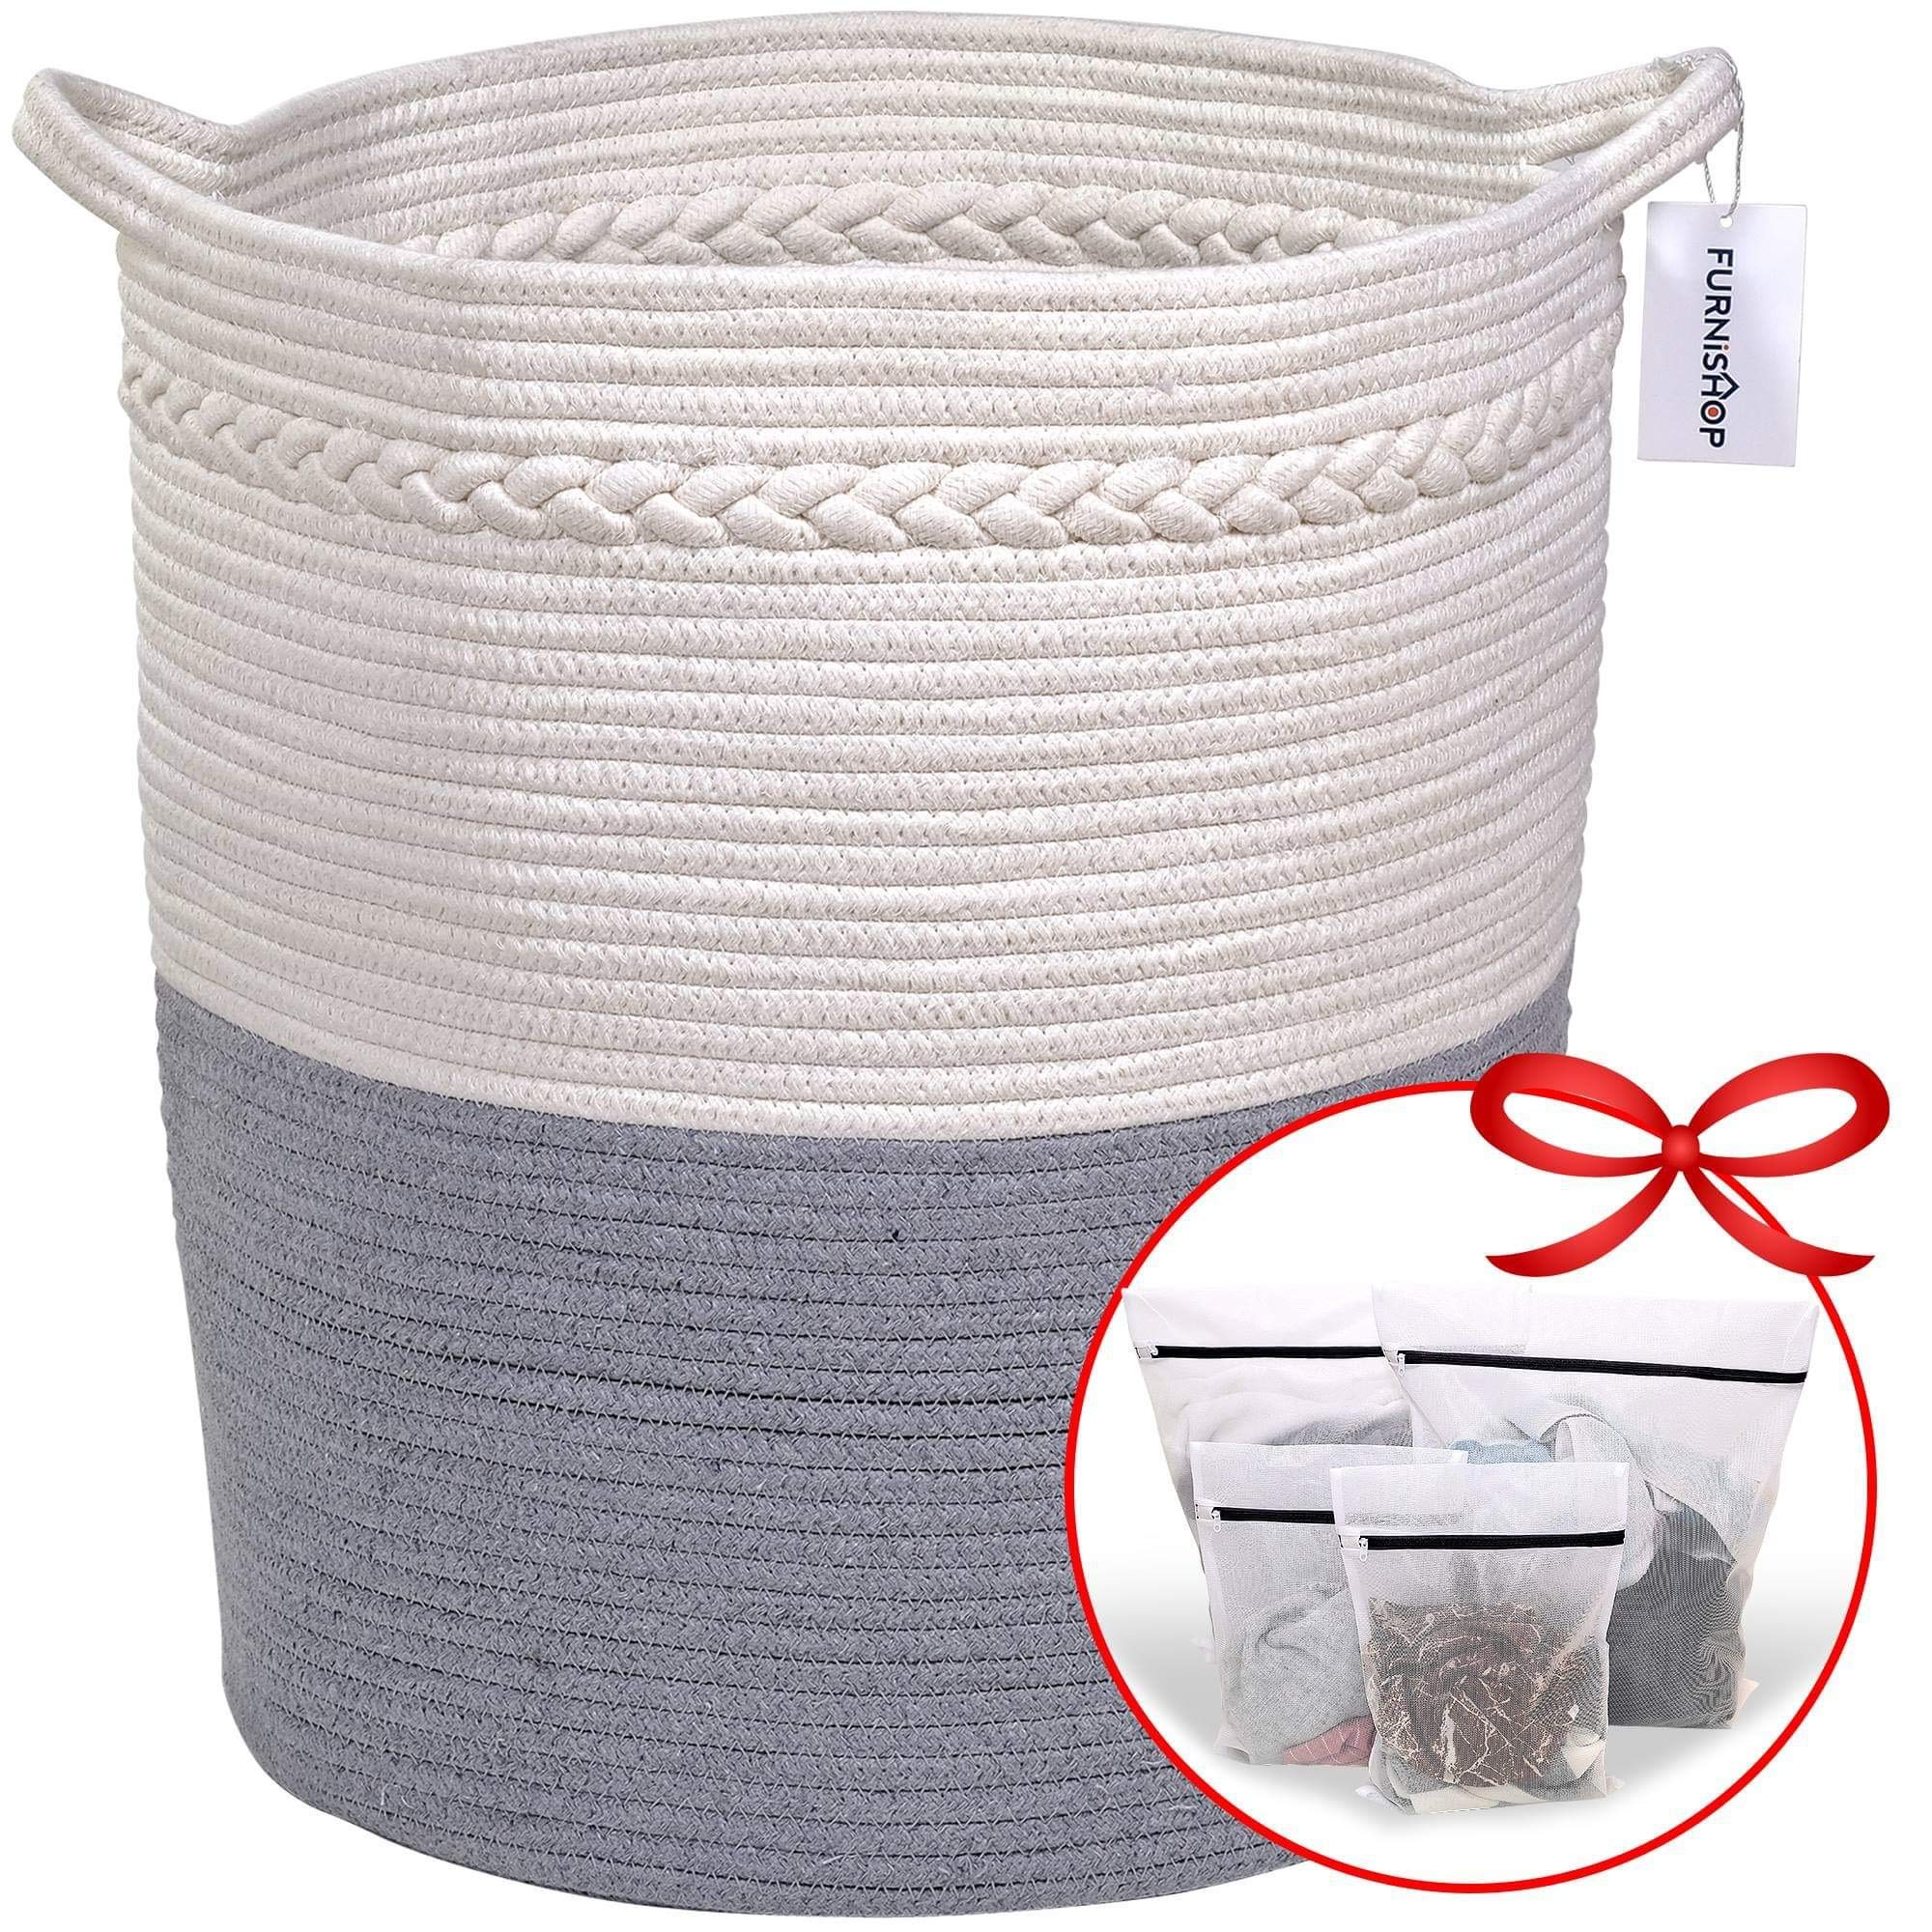 FURNISHOP Cotton Rope Basket for Blankets | 18''x16'' Extra Large Storage Baskets for Toys, Pillow, Baby Laundry | Decorative Woven Blanket Basket for Living Room, Kids Nursery | Includes 4 Laundry Bags